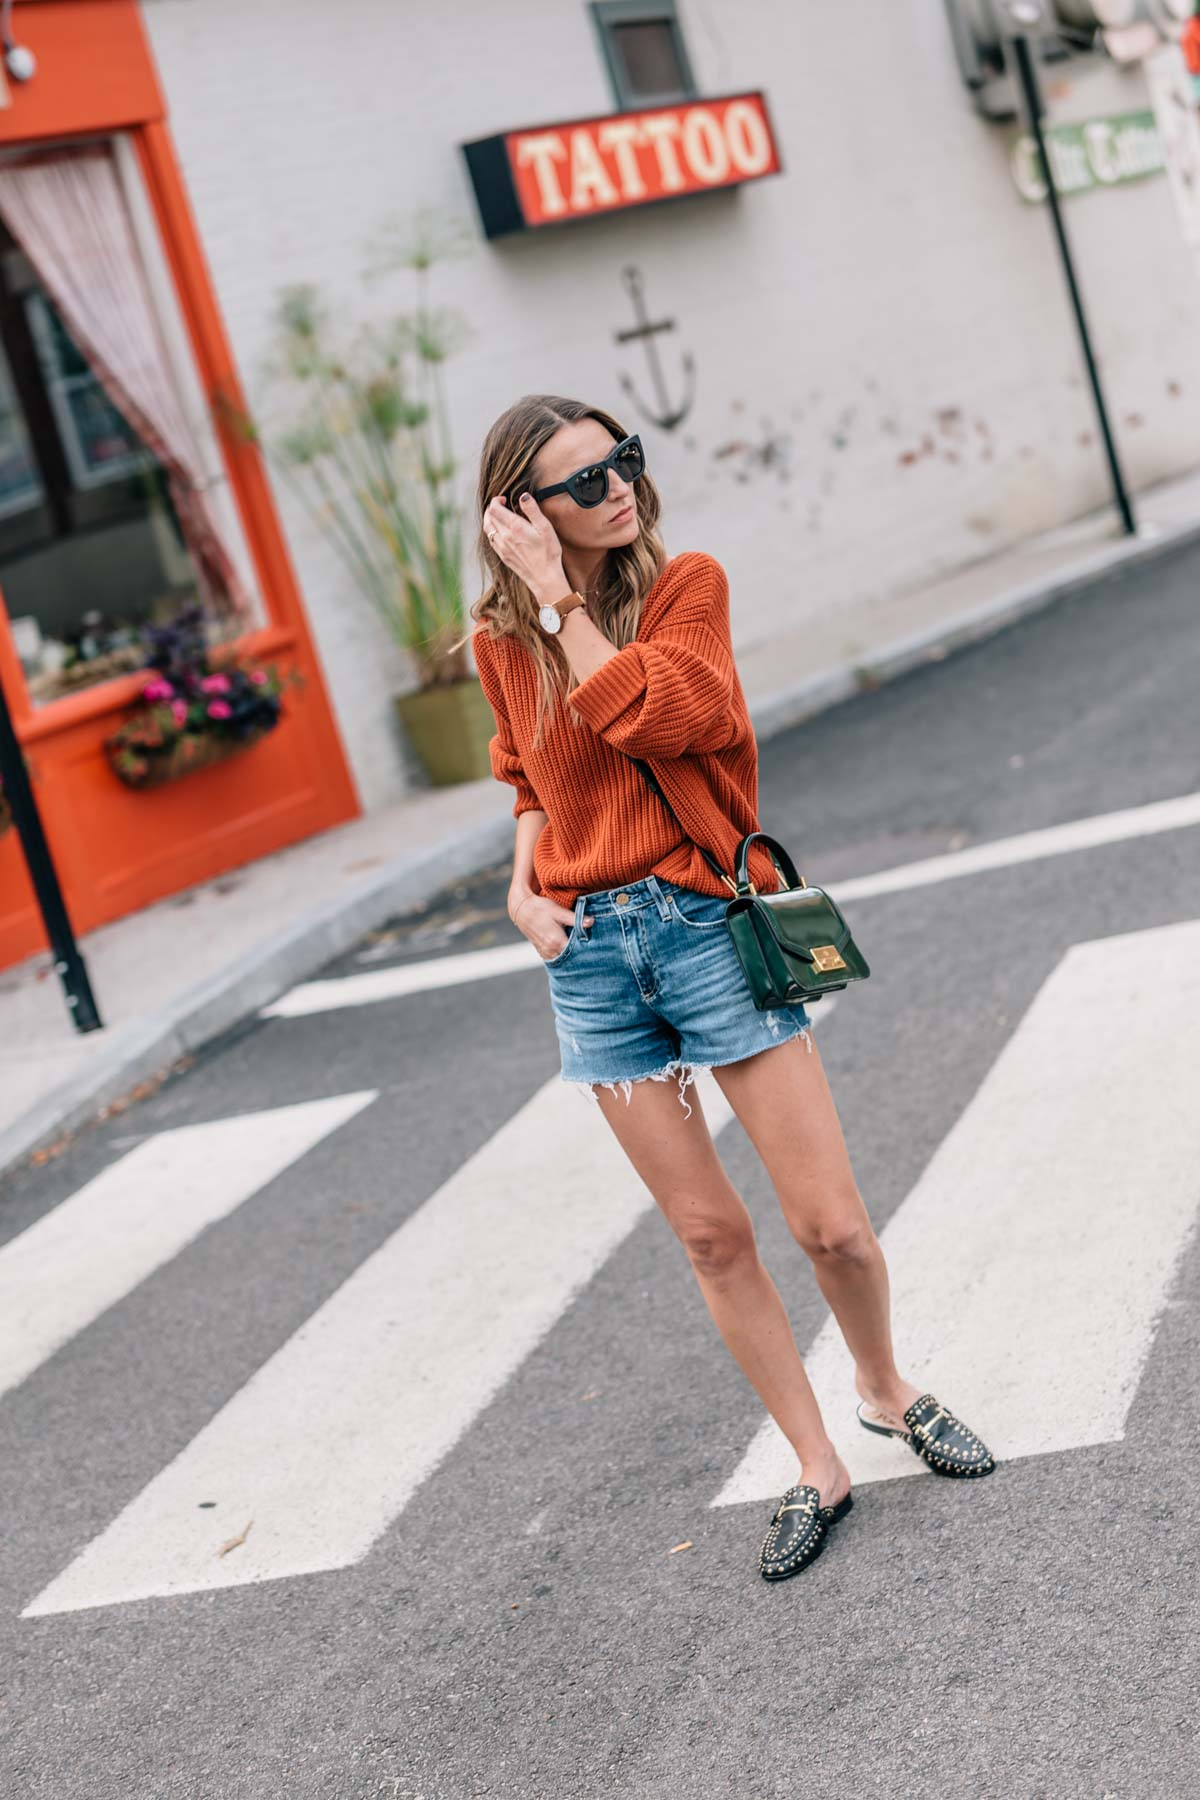 Jess Ann Kirby in Newport, RI wearing pantone autumn maple sweater, jean shorts, and sam edelman slides